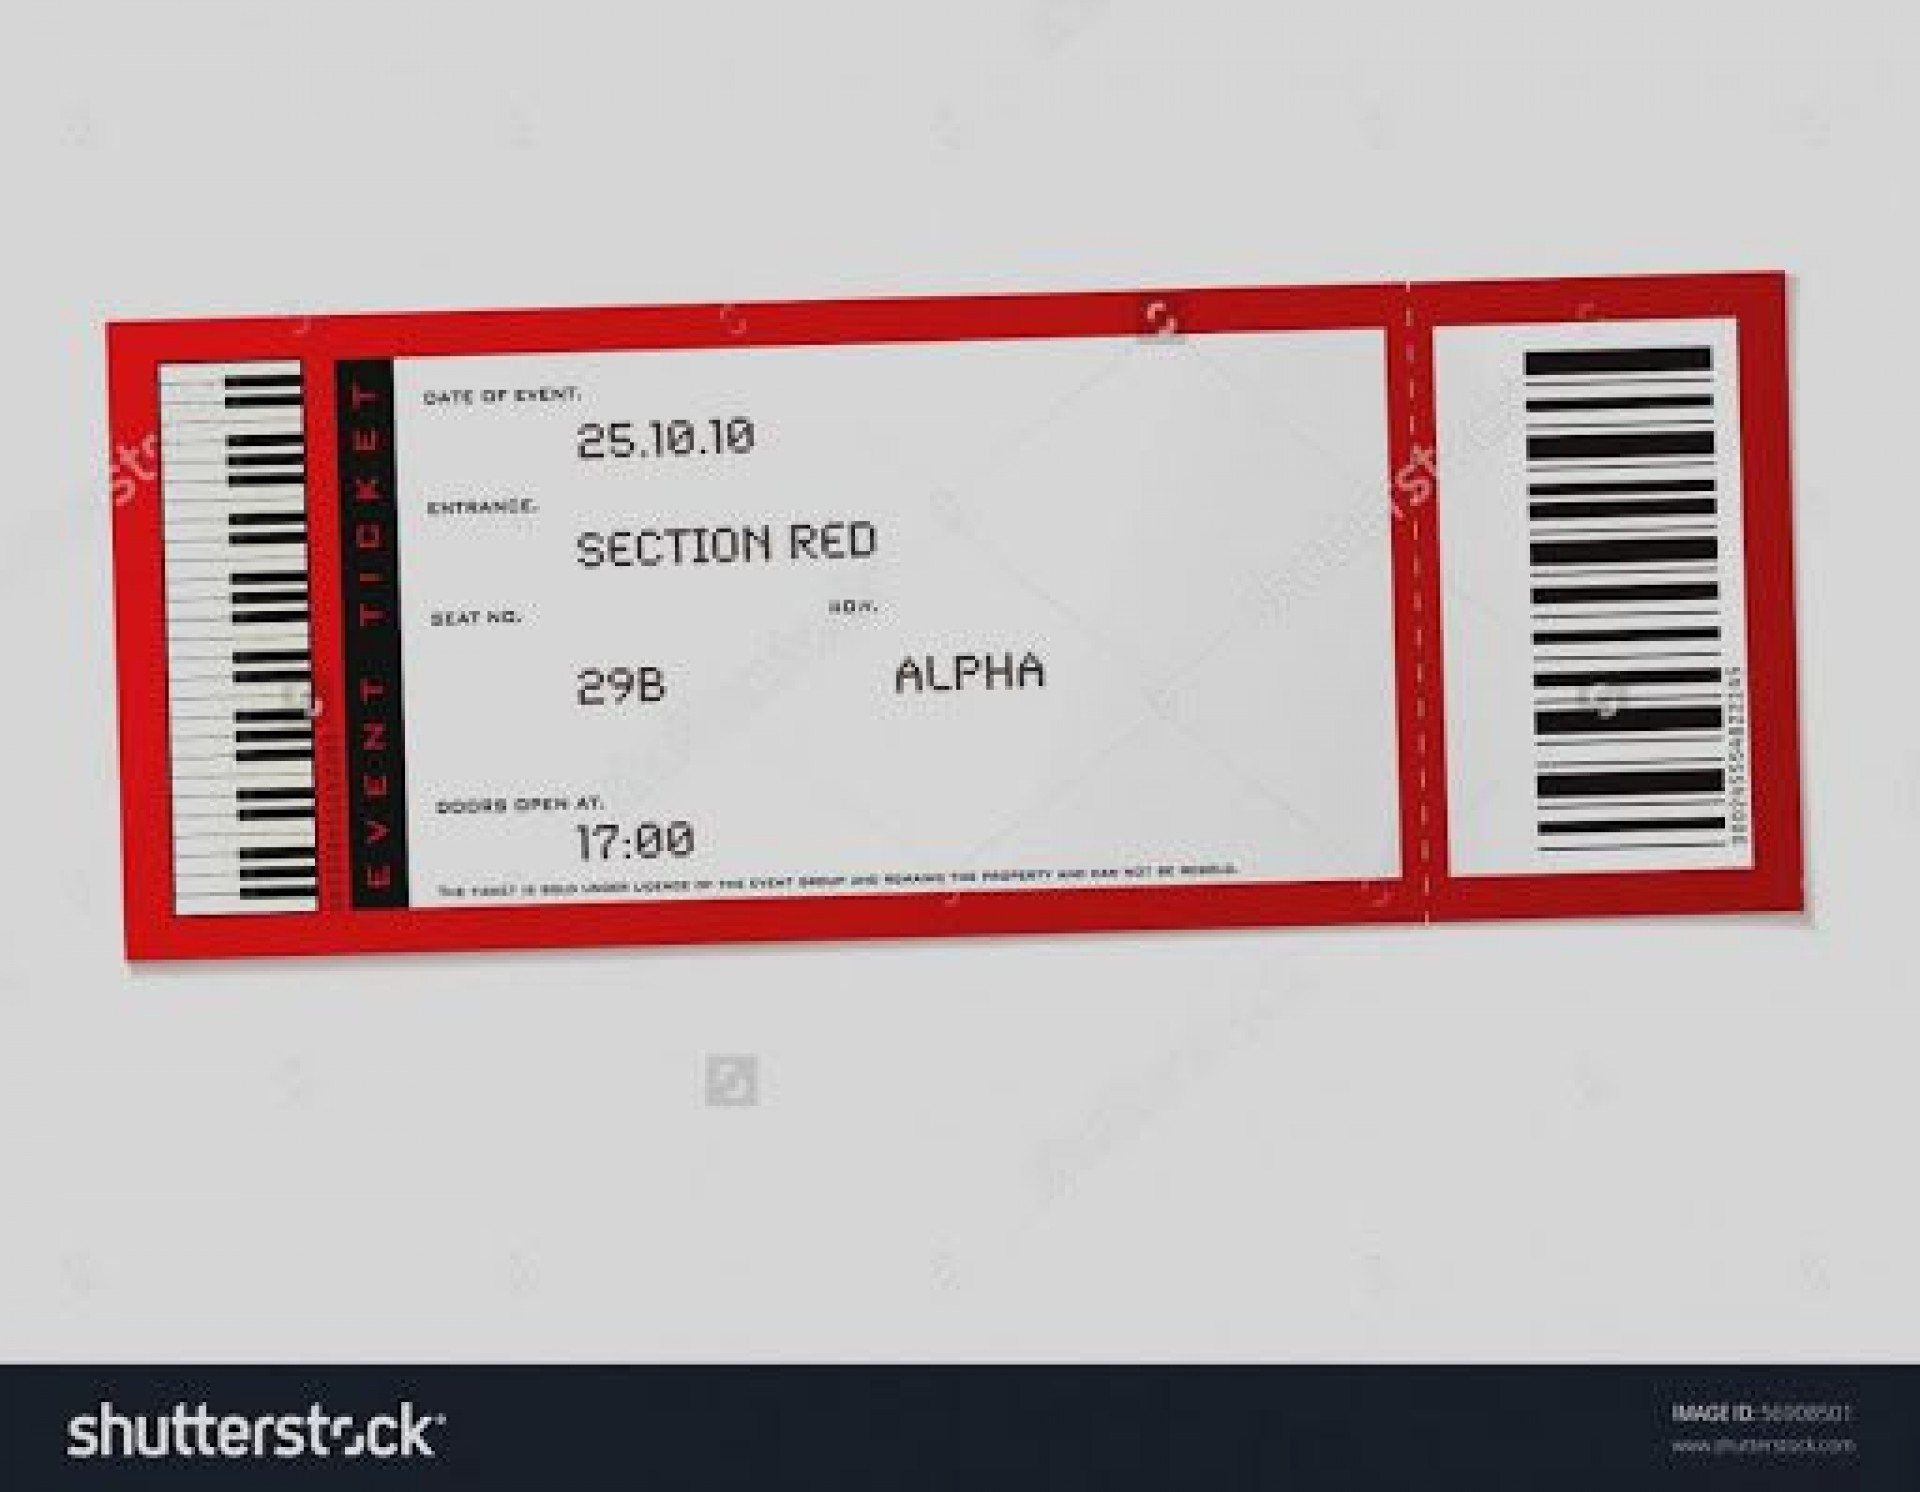 002 Rare Free Printable Concert Ticket Clipart High Resolution 1920